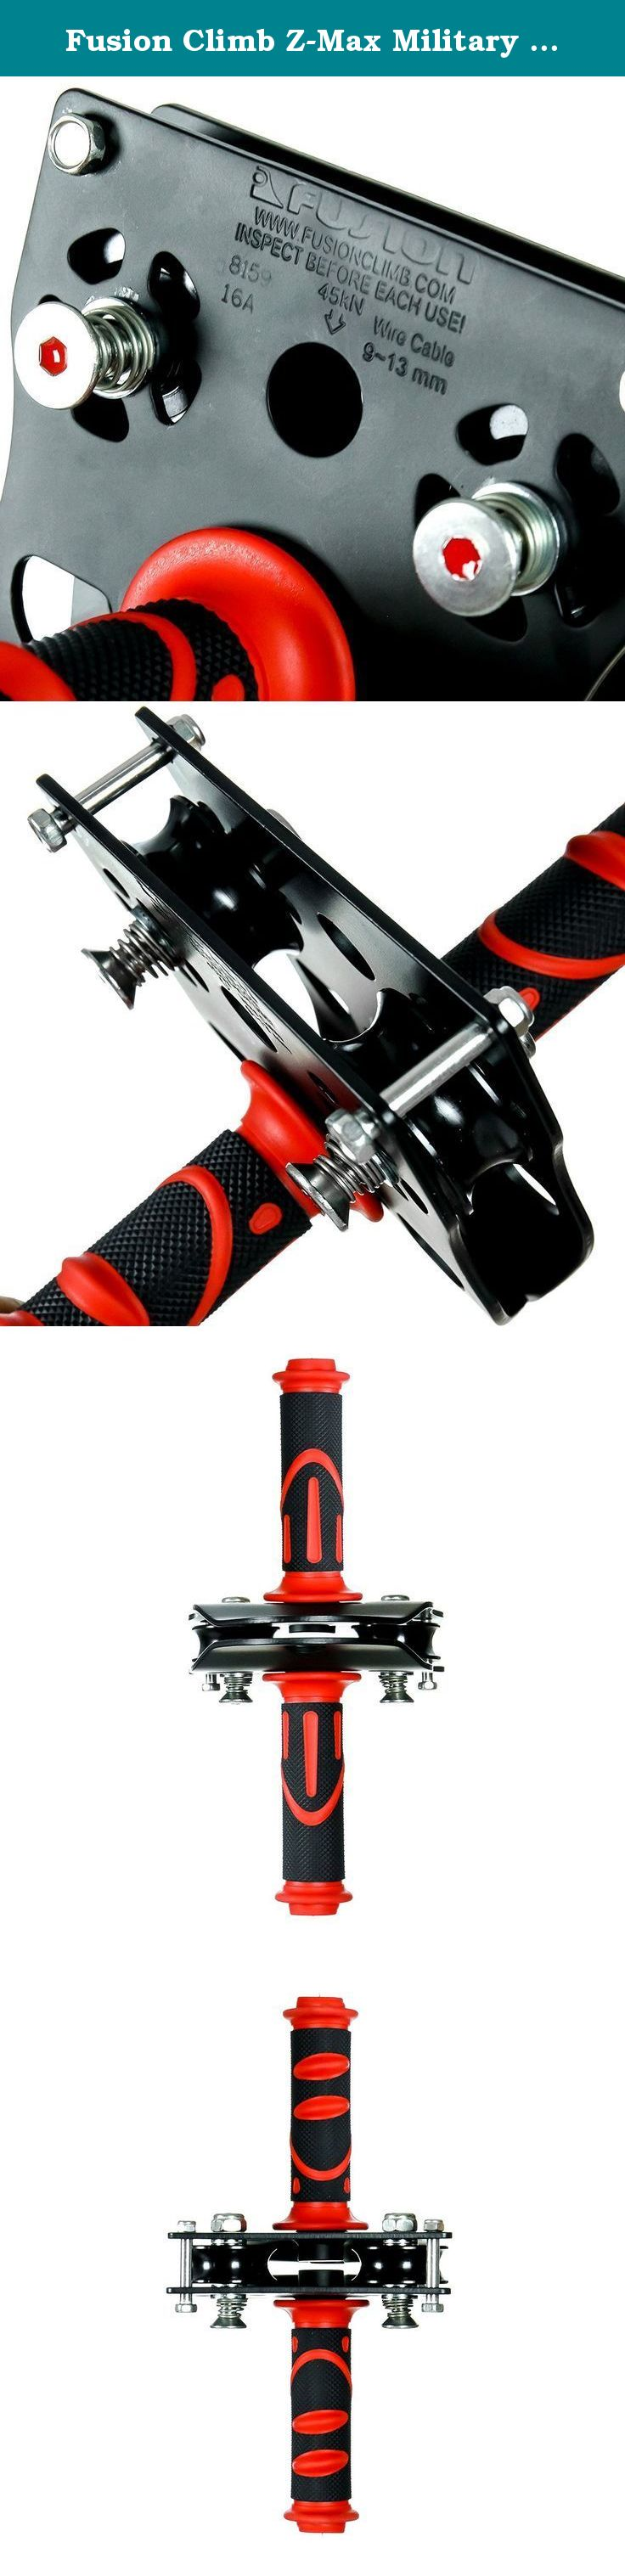 fusion climb z max military stainless steel zip line speed trolley